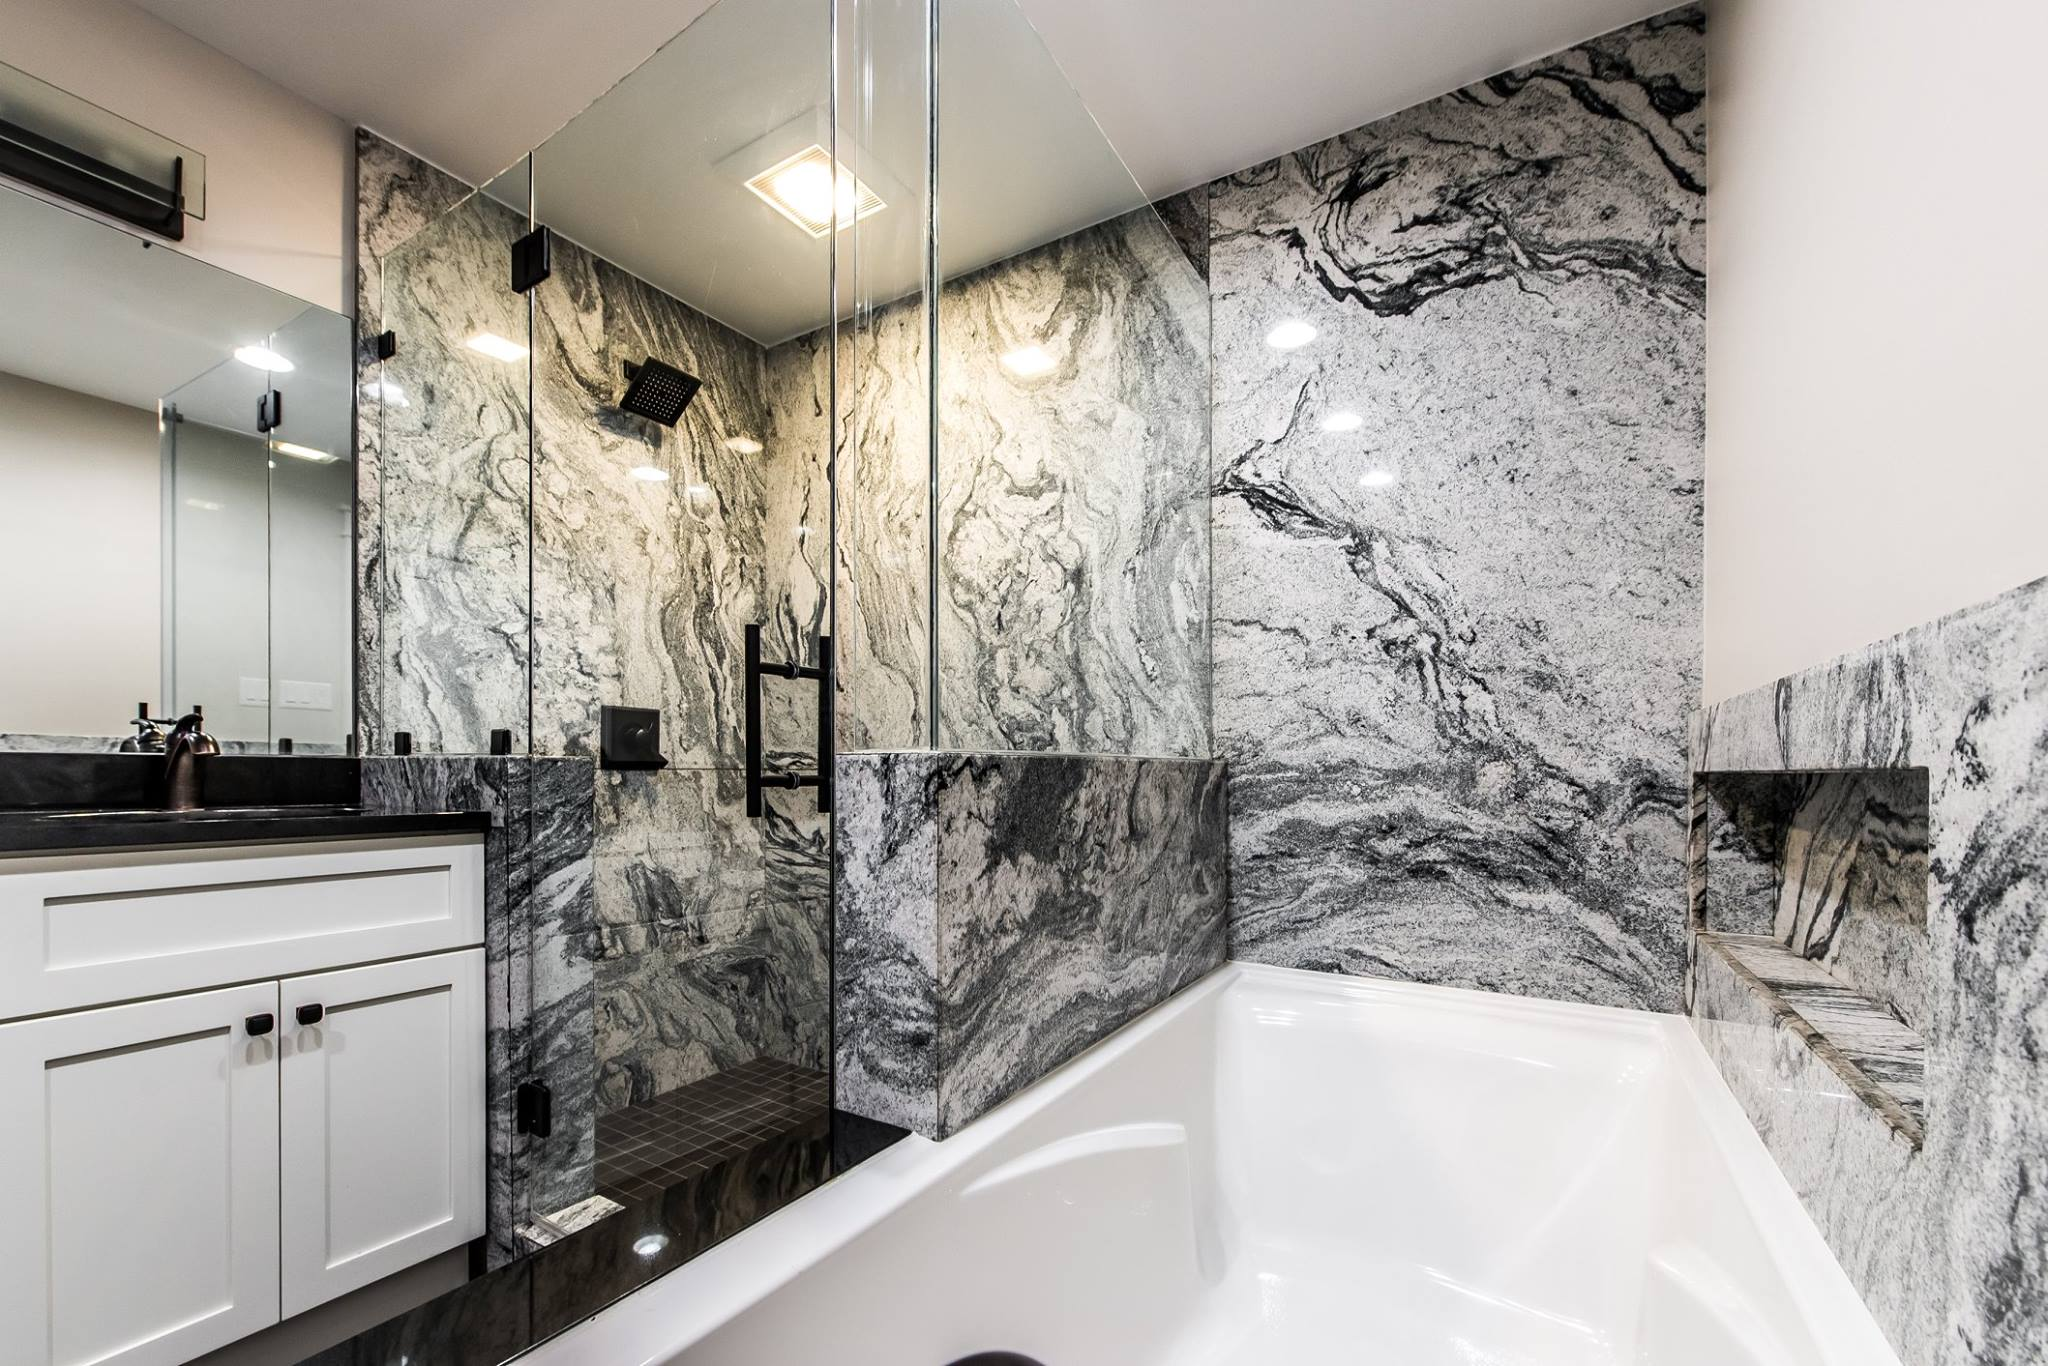 Genial Granite Shower By Ohio Property Brothers 7